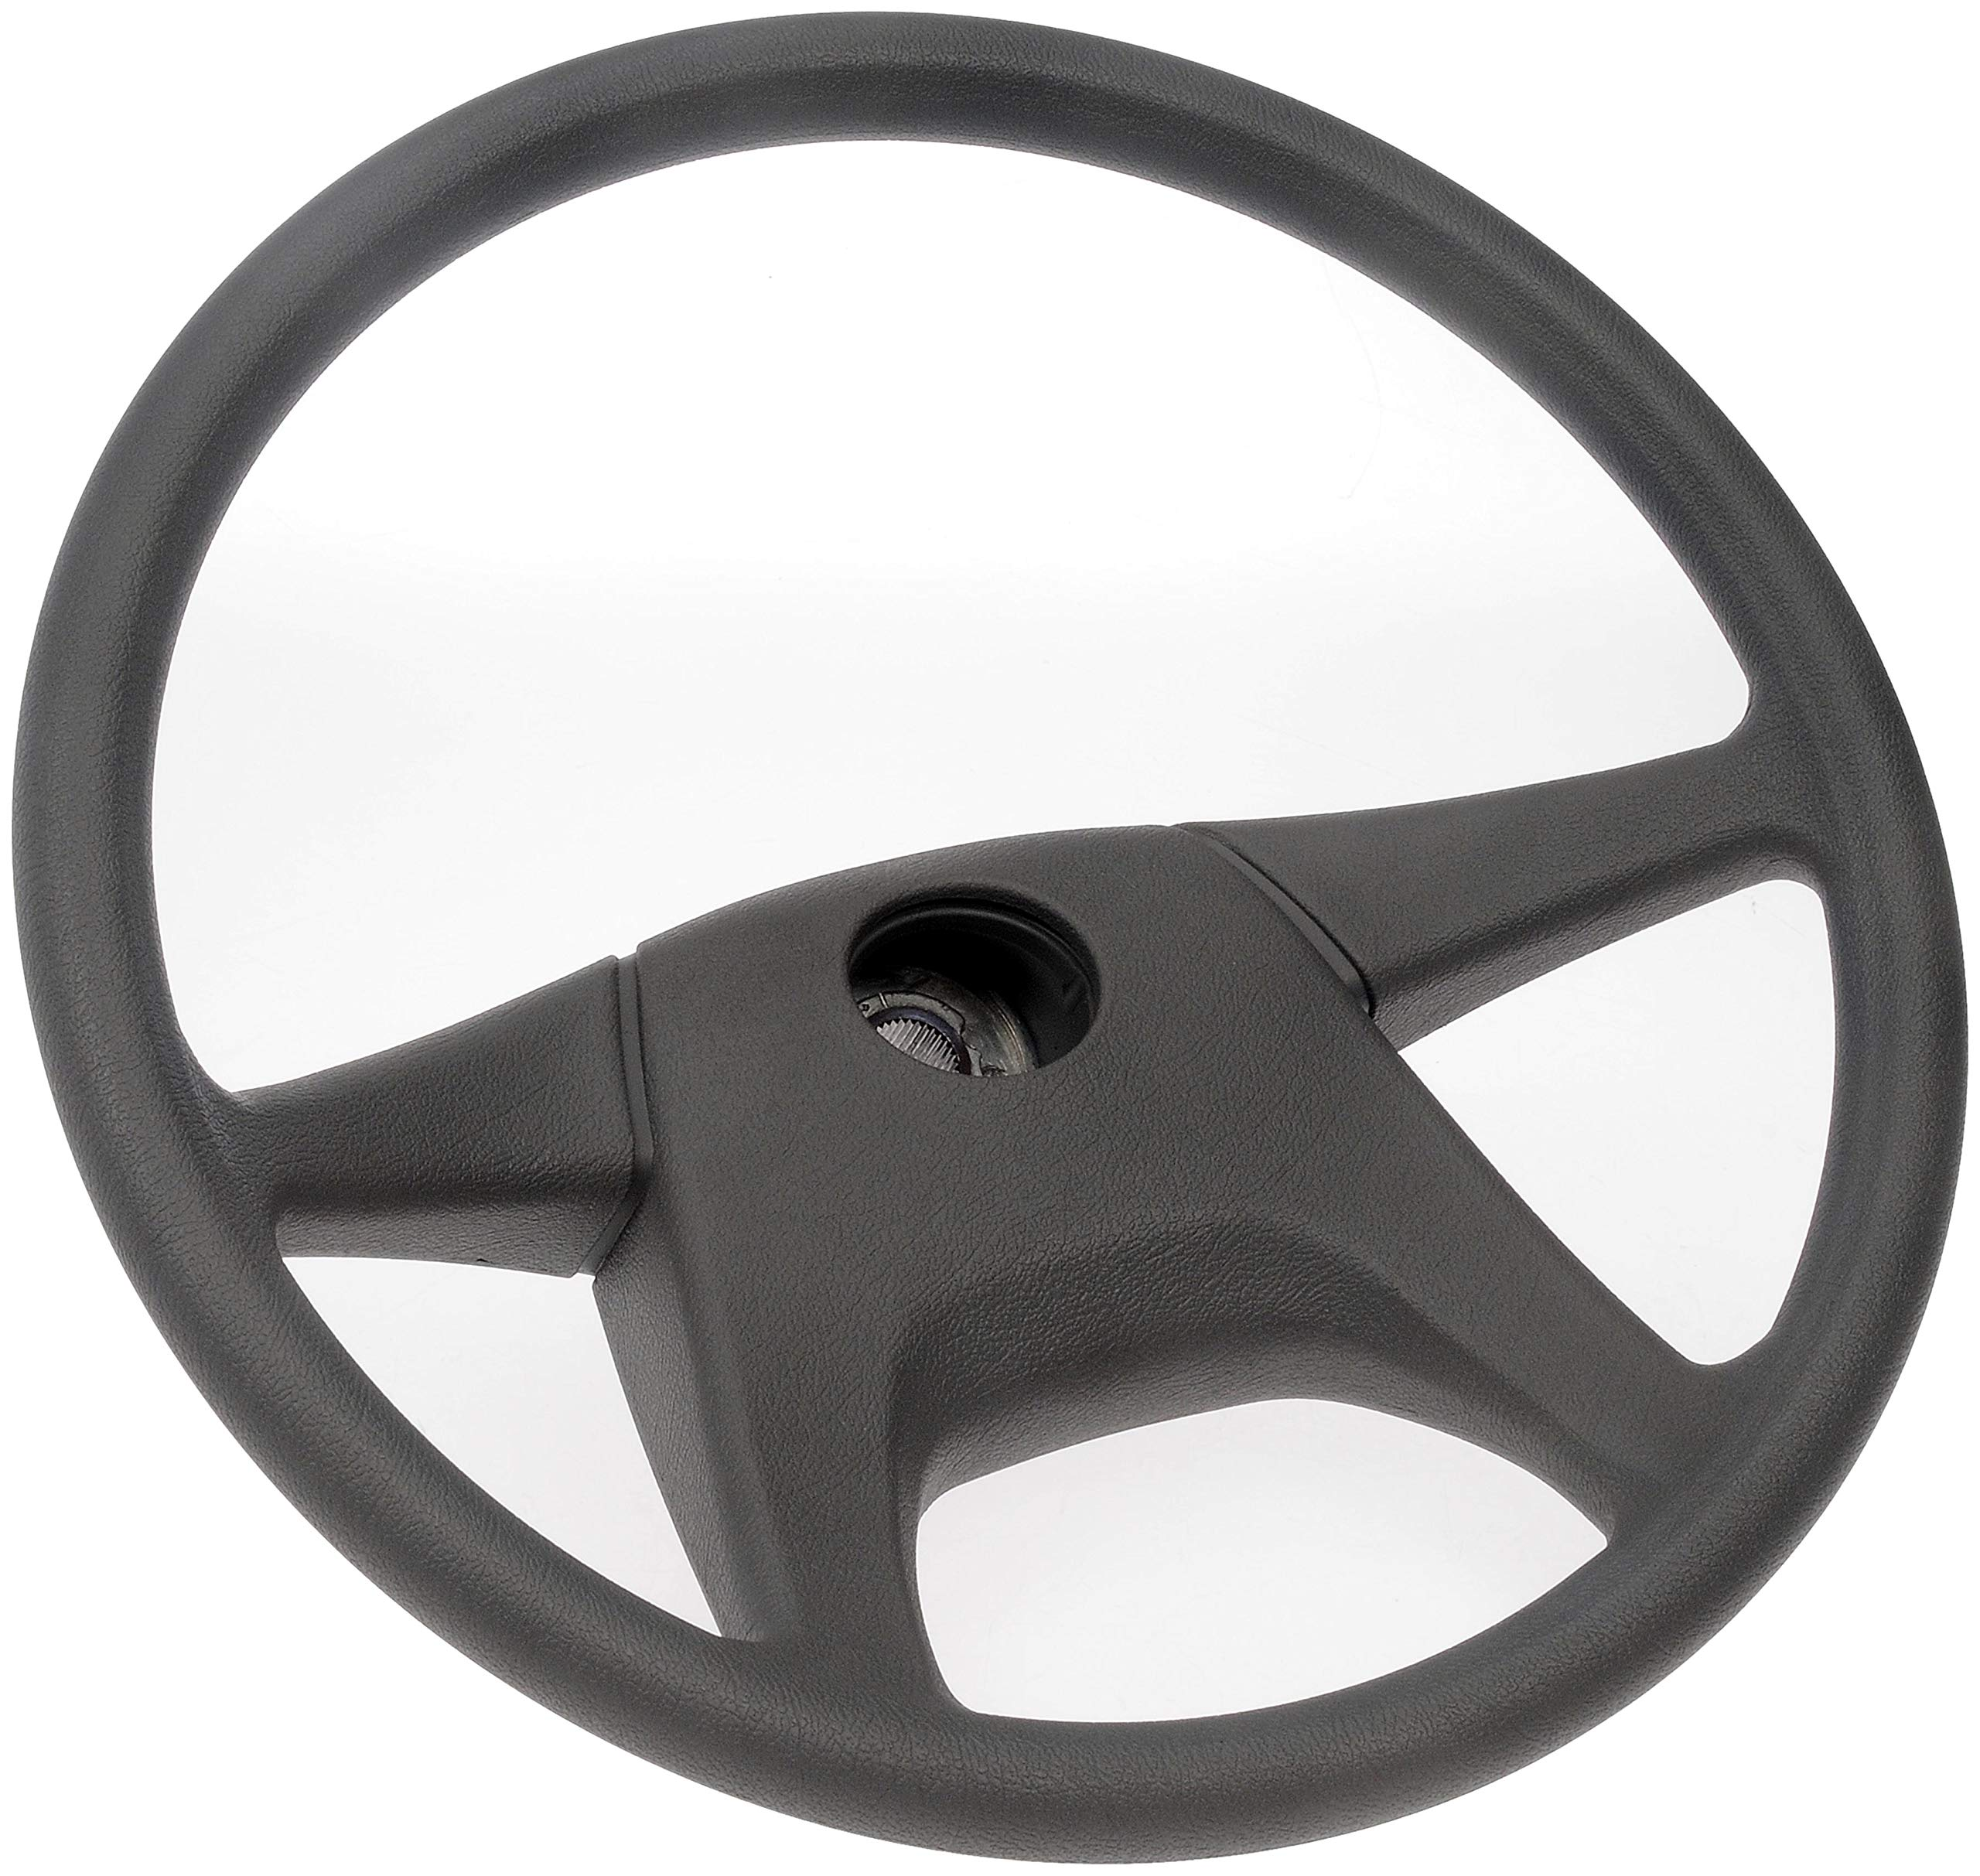 Dorman 924-5234 Steering Wheel for Select Freightliner Trucks